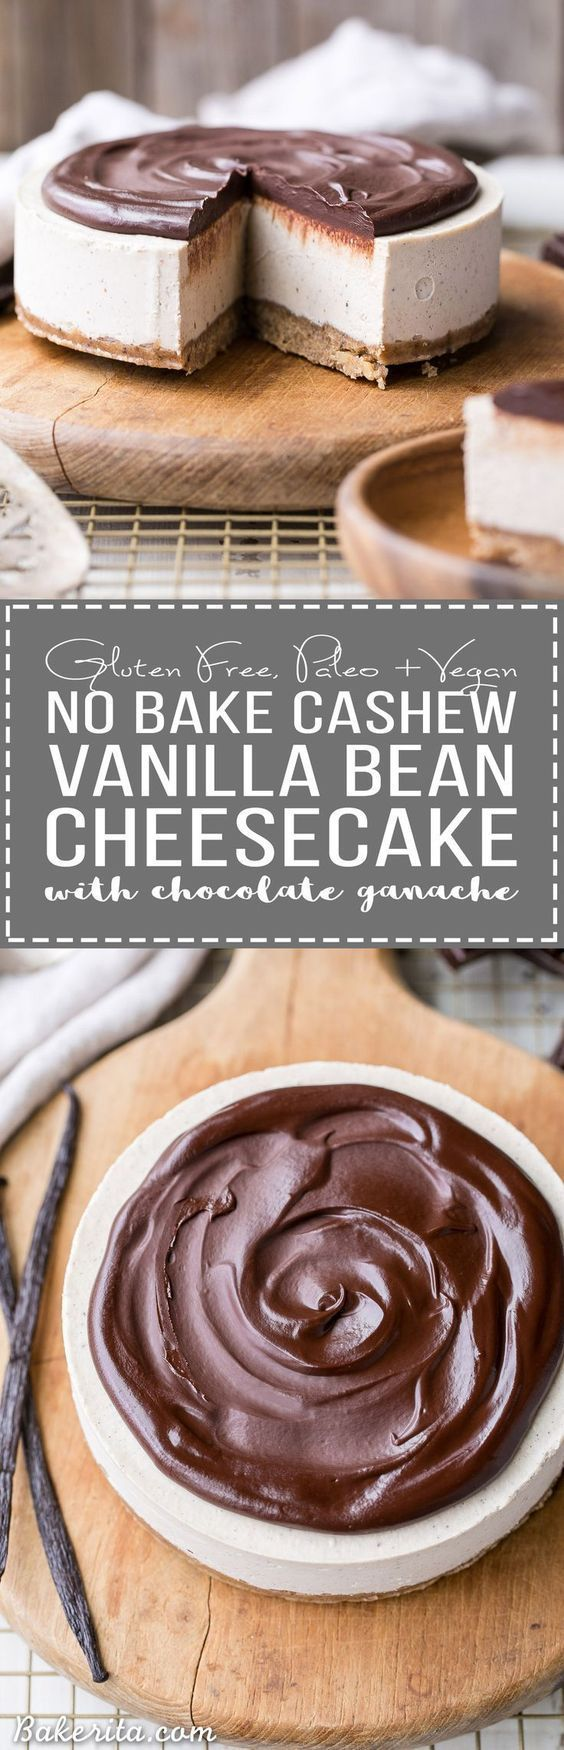 This No-Bake Vanilla Bean Cheesecake with Chocolate Ganache is a gluten-free, Paleo and vegan cheesecake made with a walnut crust, a creamy cashew cheesecake filling, topped with a luscious chocolate ganache. This healthier cheesecake alternative will sat